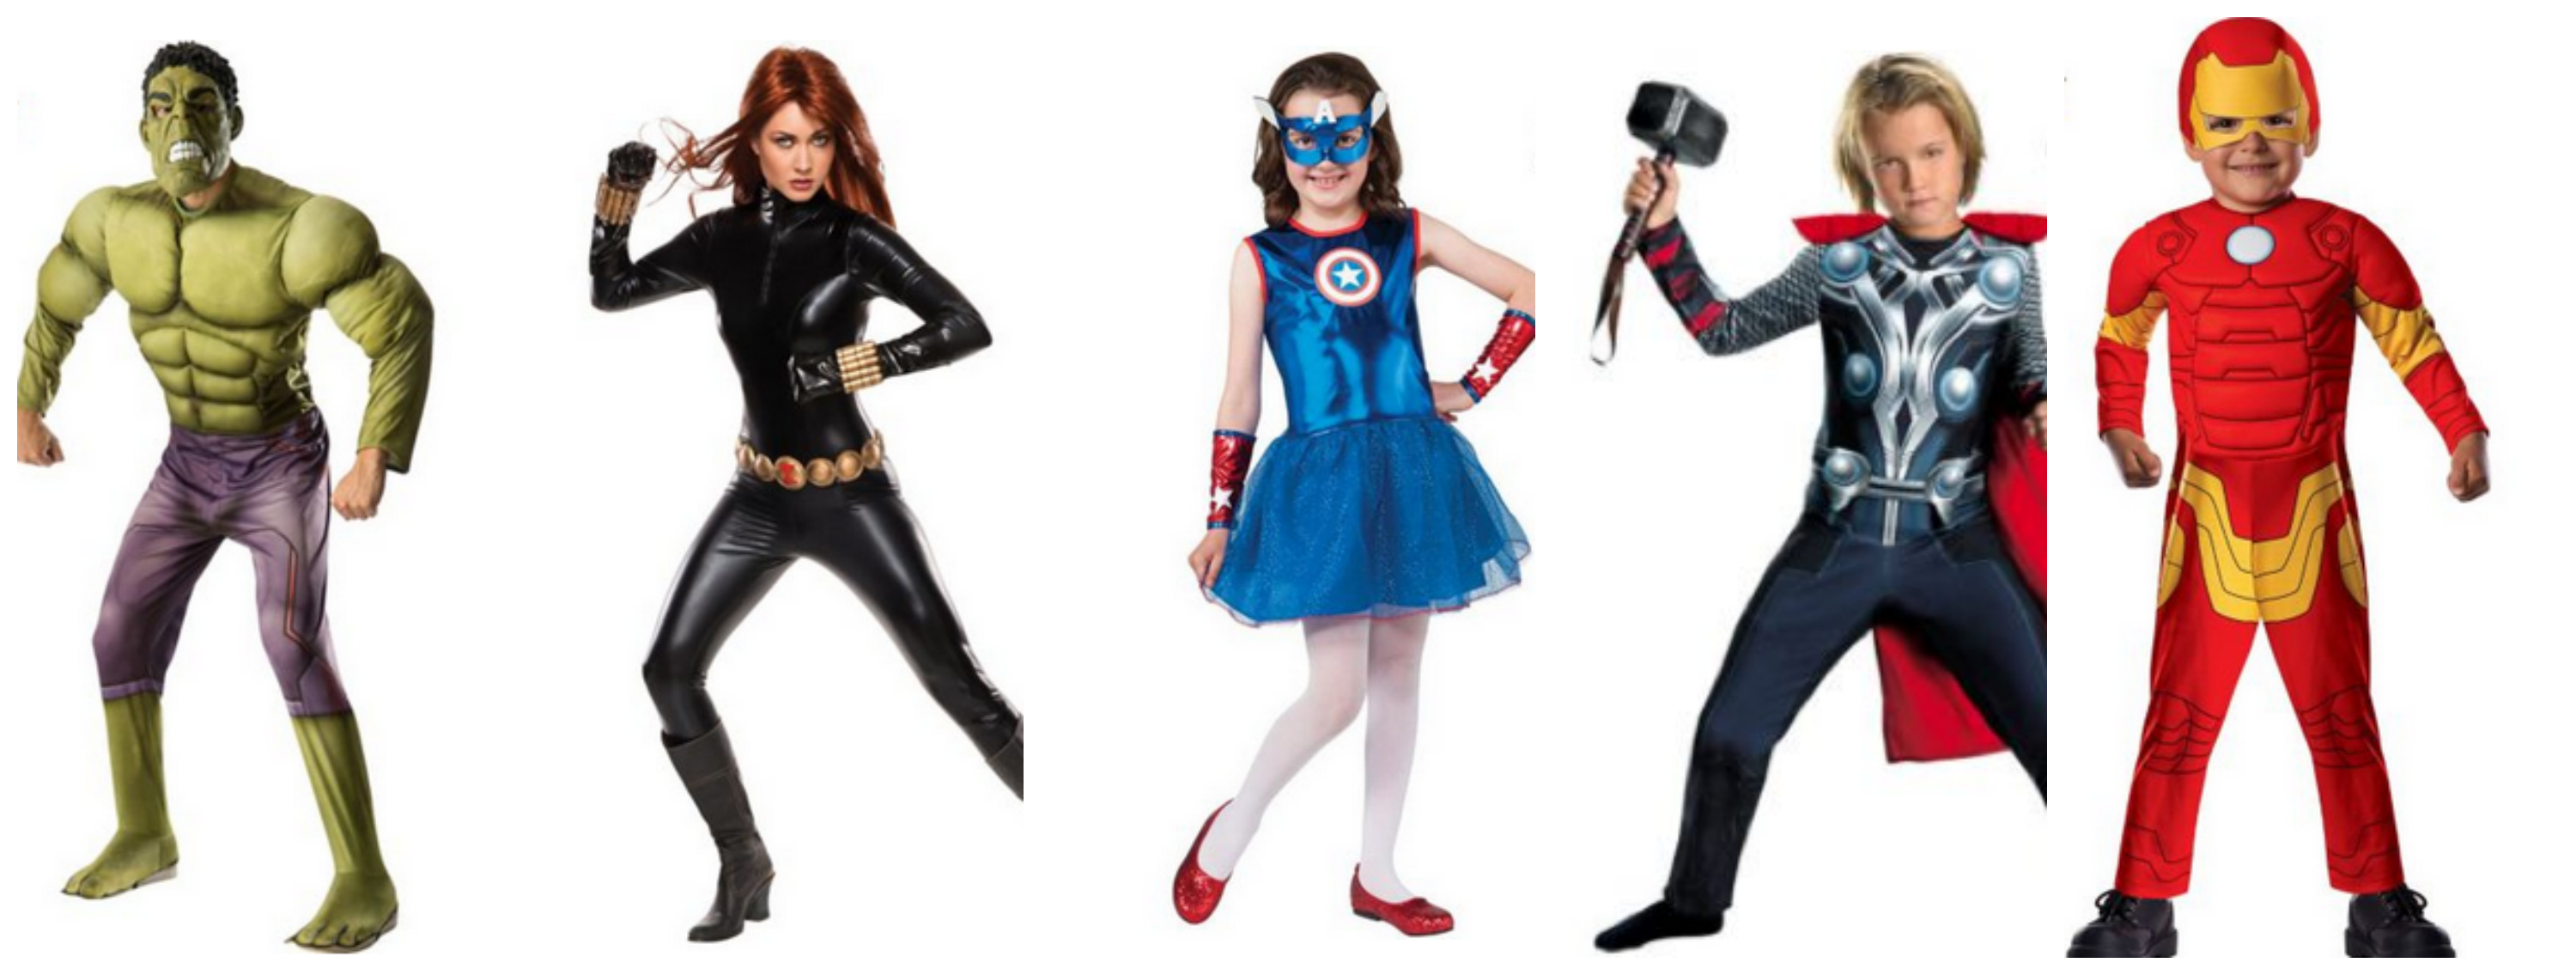 The Avengers Halloween Family Costume